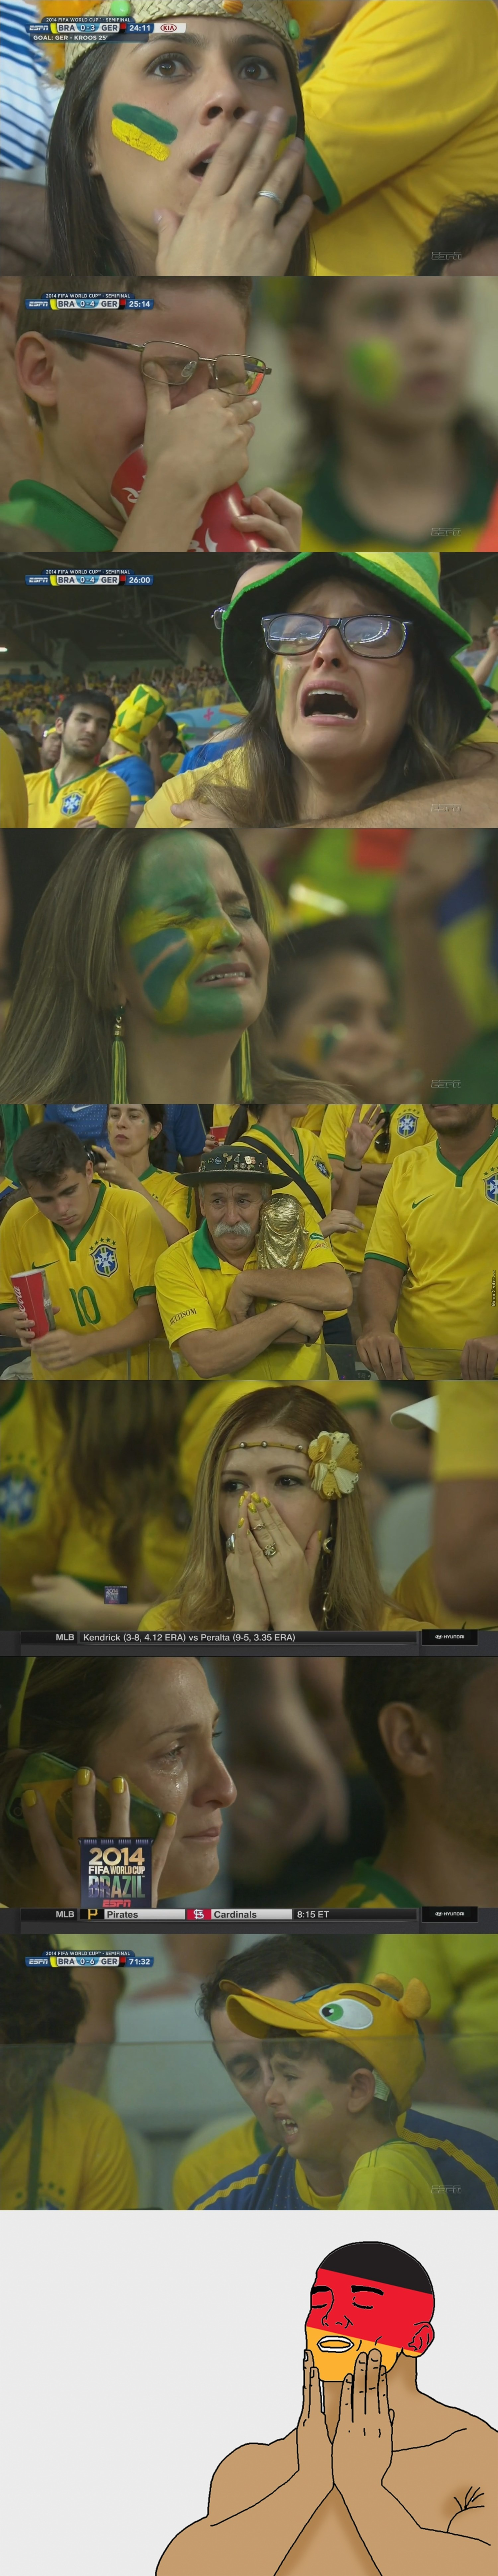 Different Faces Of Defeat.